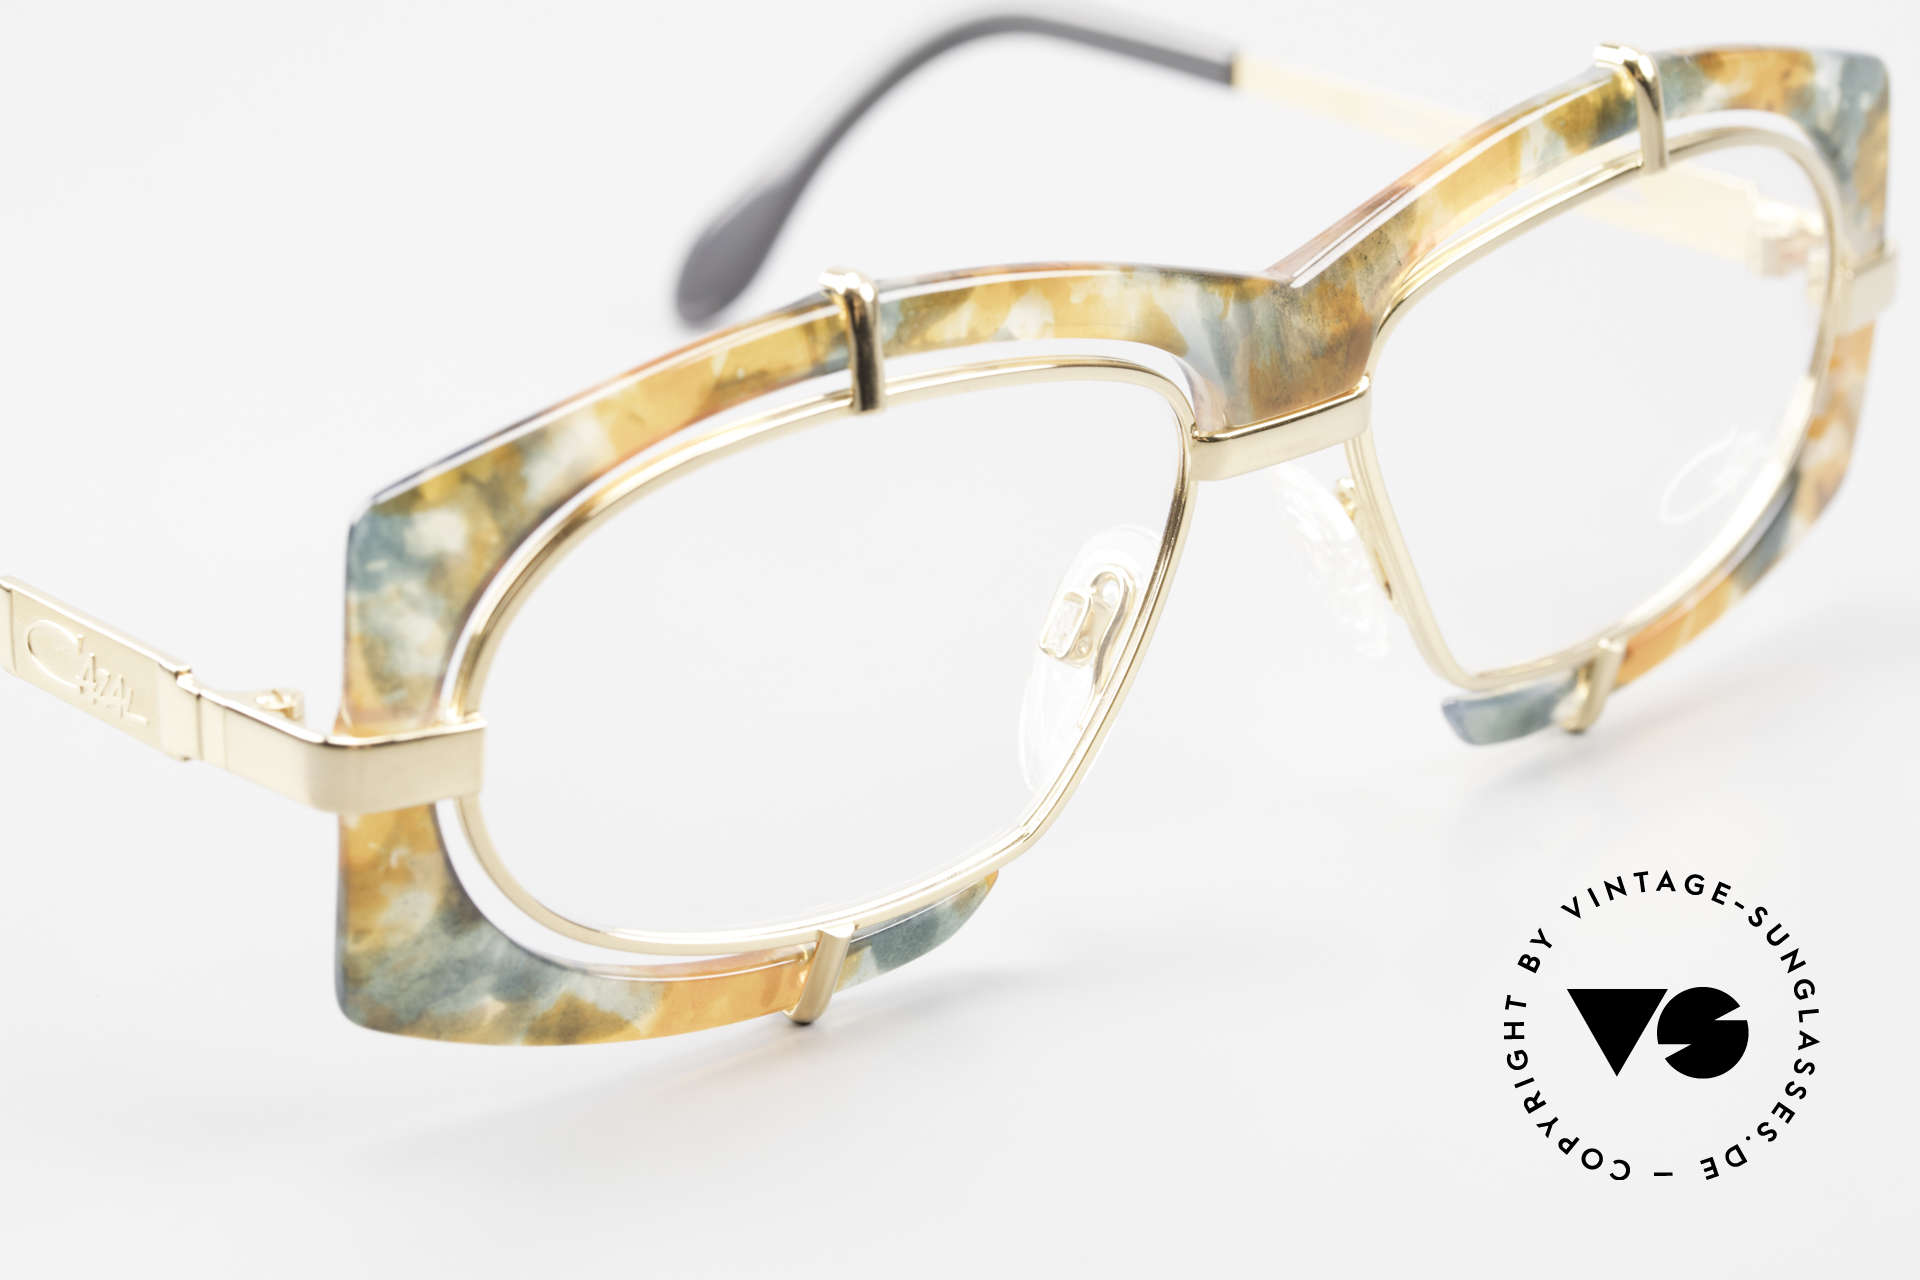 Cazal 872 Extraordinary 90's Eyeglasses, unworn (like all our rare vintage Cazal 90's eyewear), Made for Men and Women